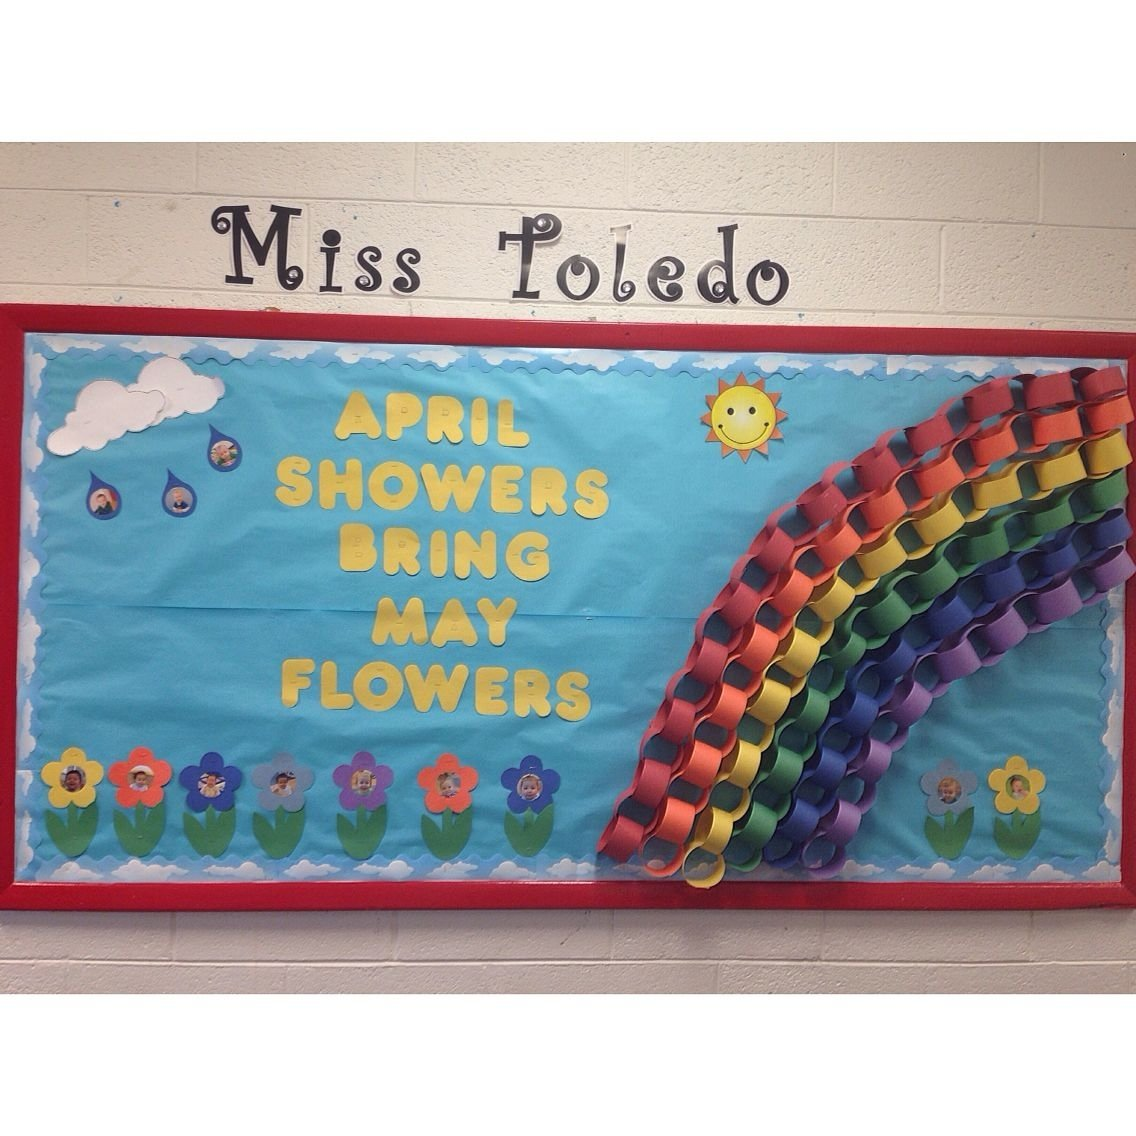 april showers bring may flowers bulletin board. april 2015. | my